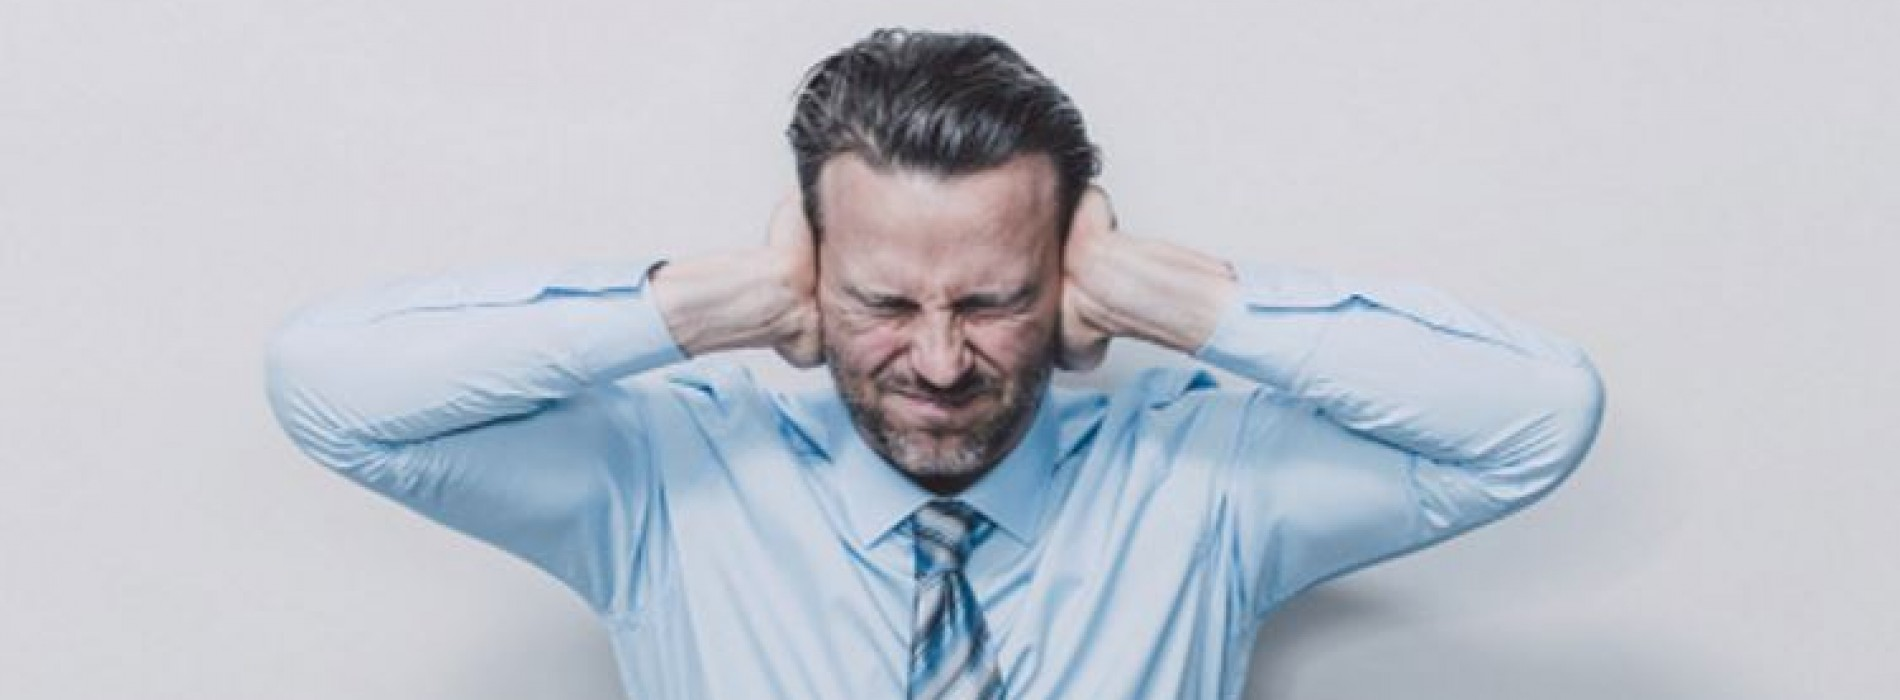 Fluttering Sound In Ear – The 3 Main Causes